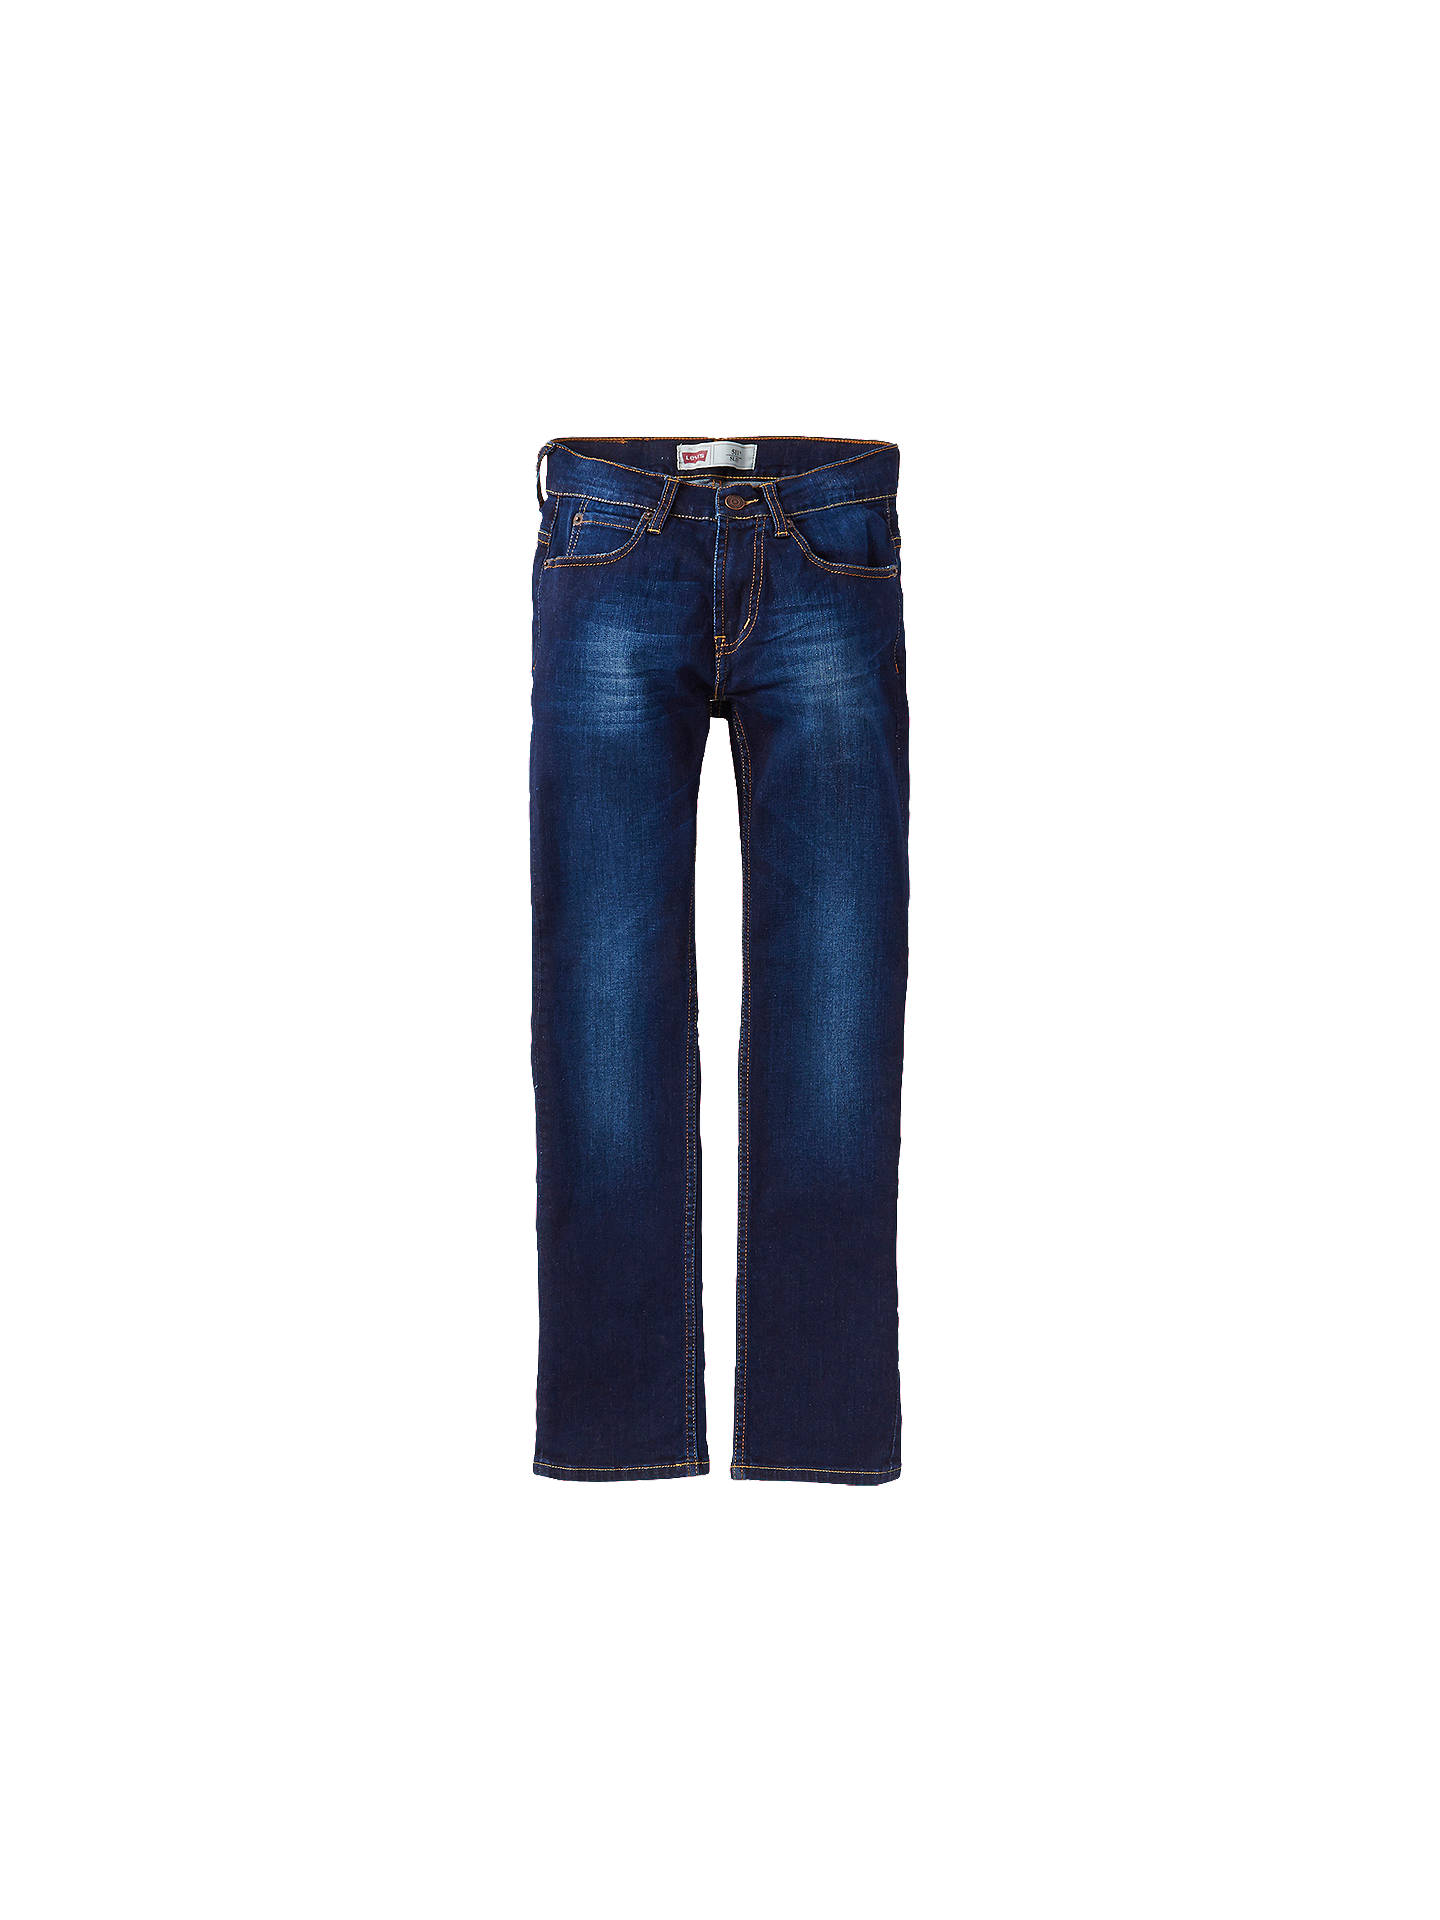 ba57a6bdda Buy Levi s Boys  511 Slim Fit Jeans